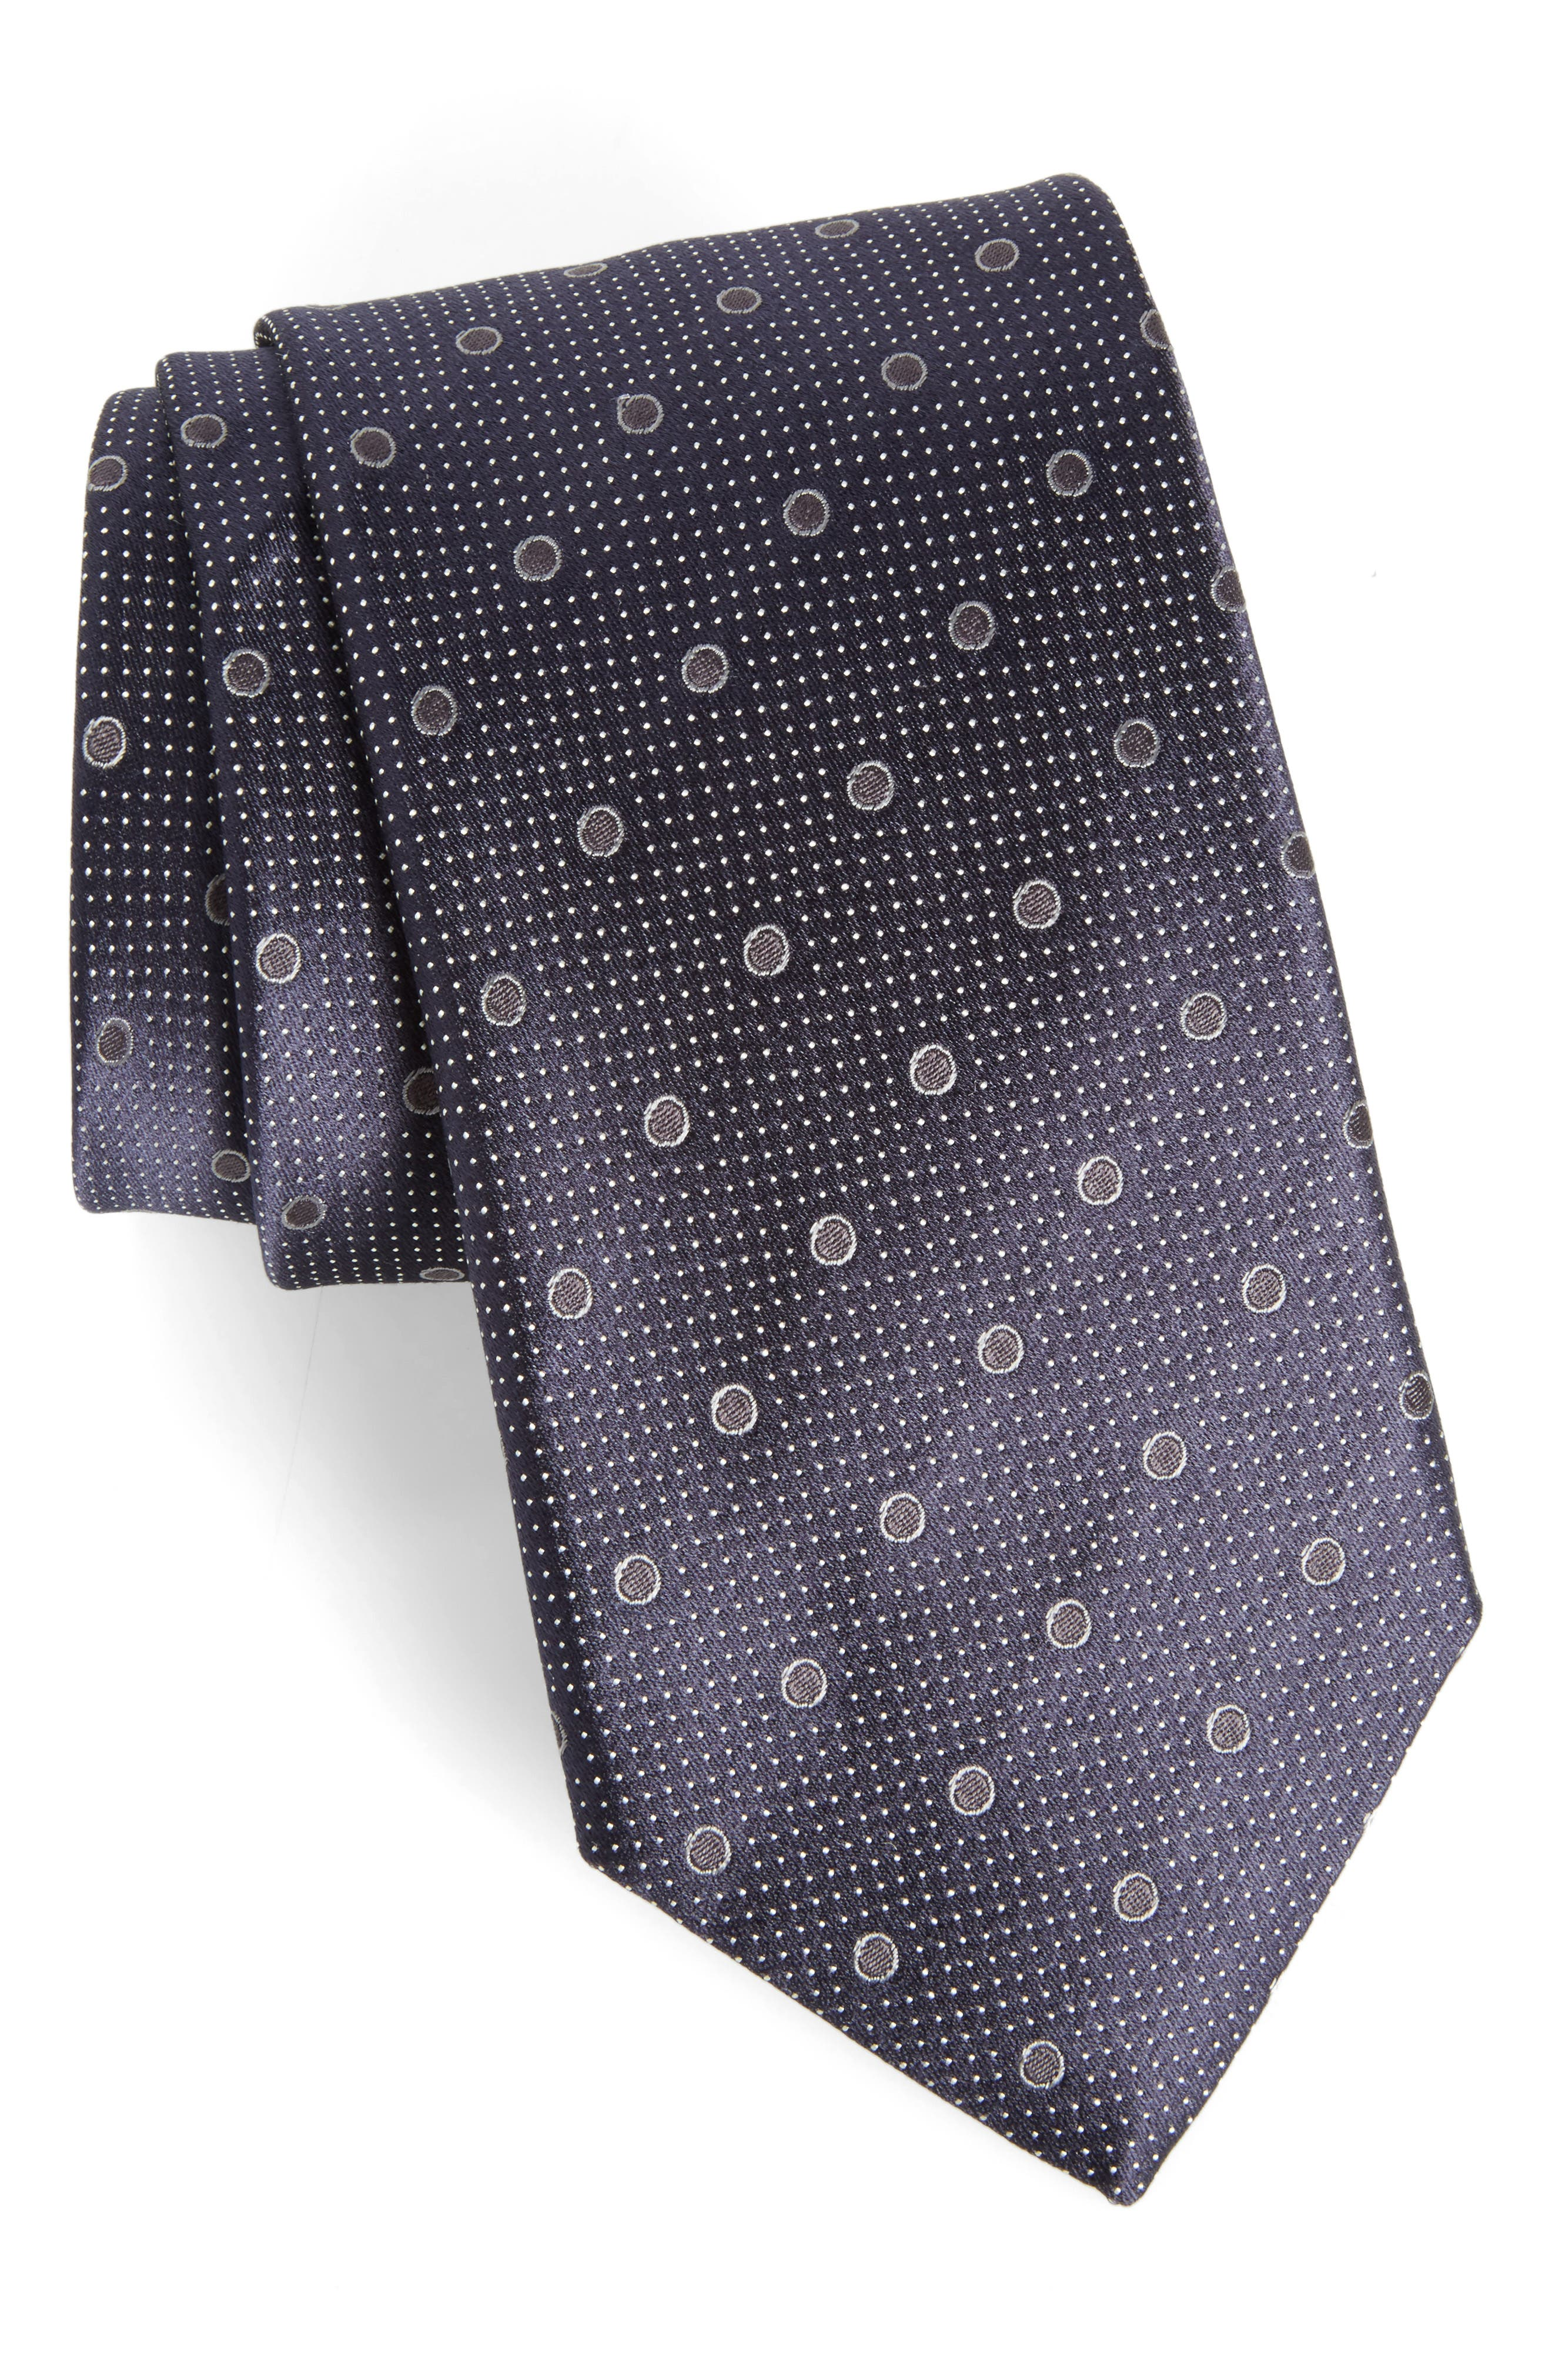 Alternate Image 1 Selected - Canali Dot Silk Tie